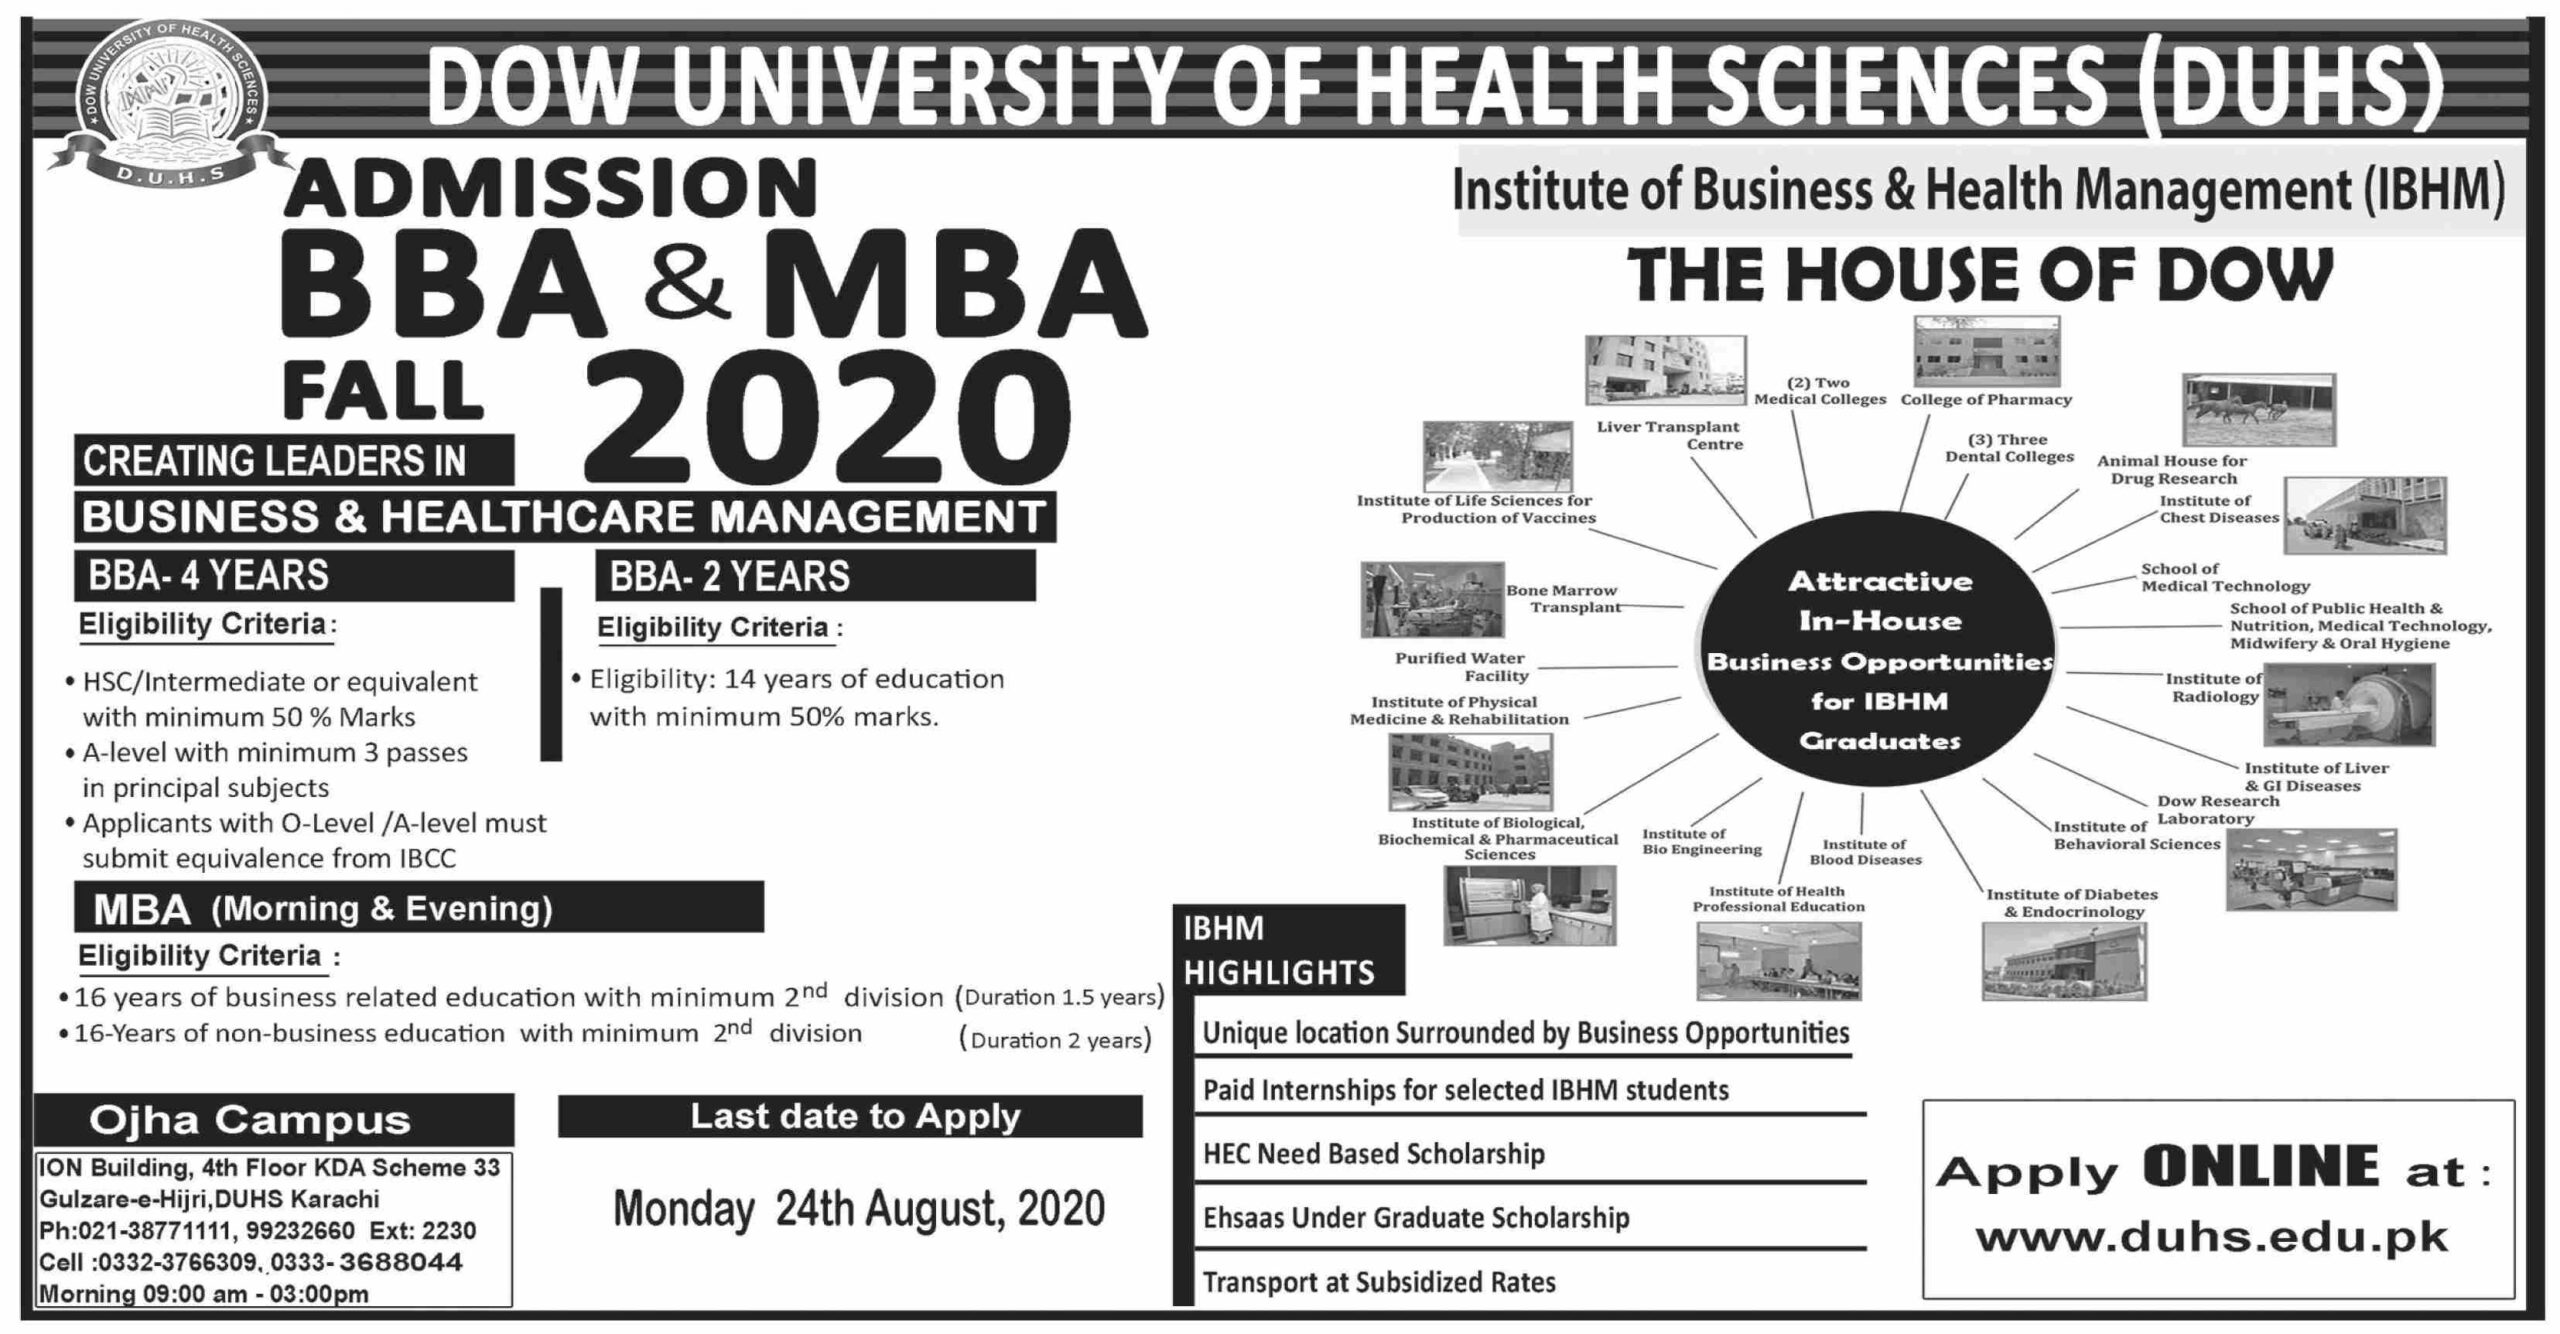 Admissions BBA-MBA 2020 at Dow University of Health Sciences DUHS Karachi